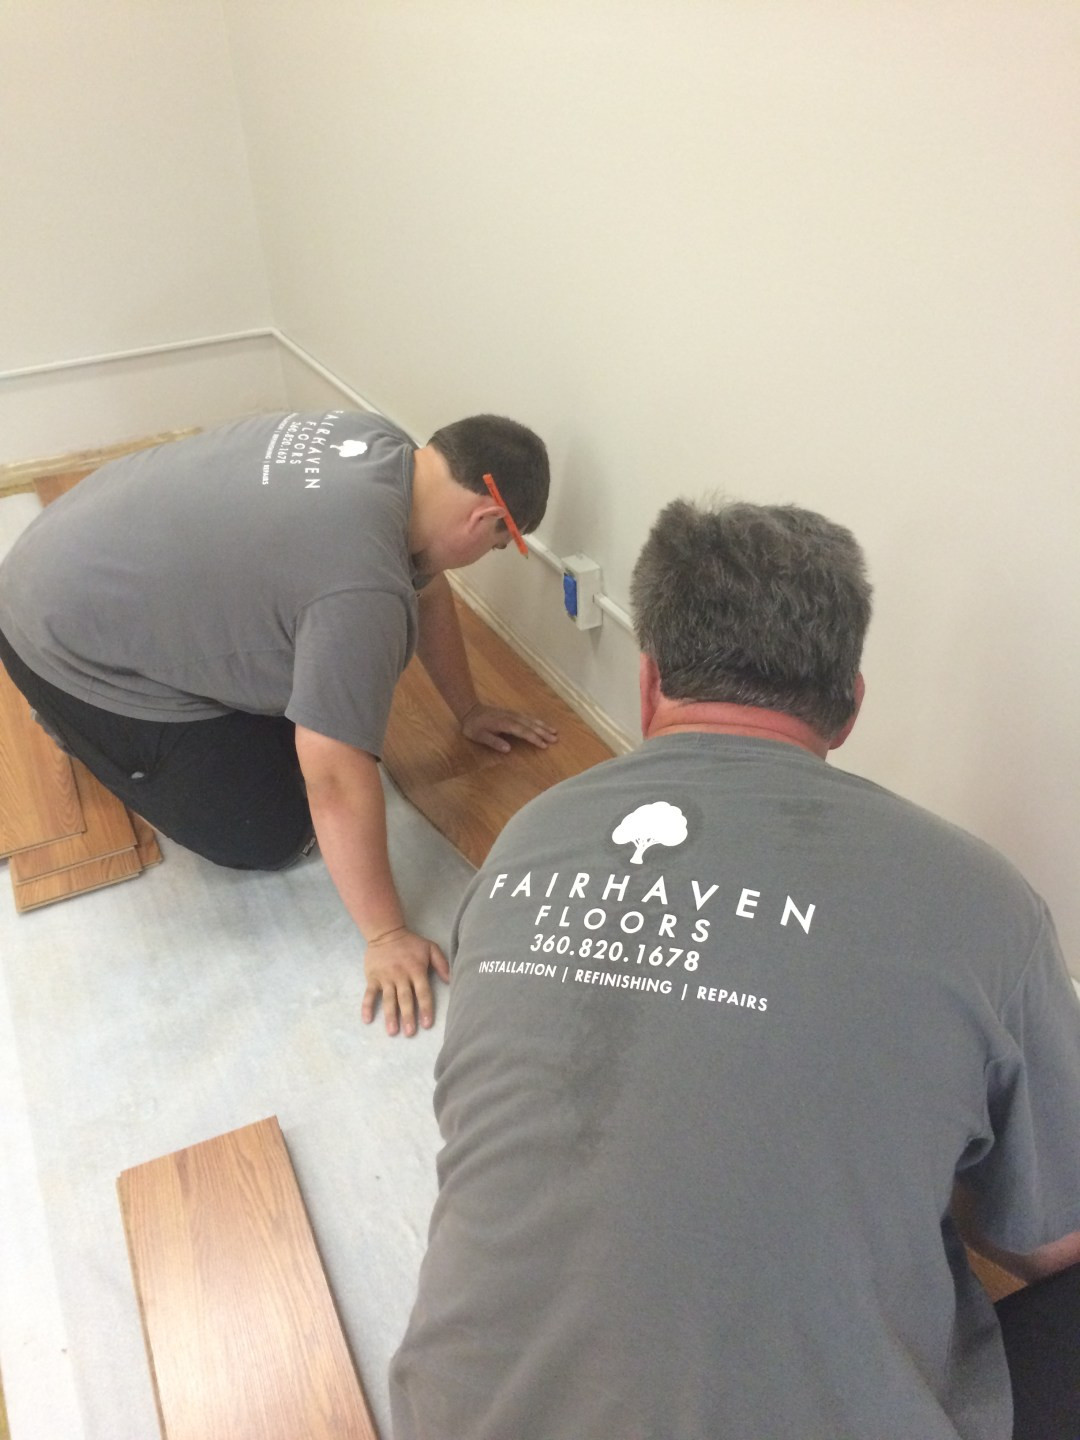 hardwood floor refinishing bellingham wa of your project fairhaven floors bellingham wa inside at fairhaven floors we want to ensure a pleasant experience and inform you of what to expect before during and after your project